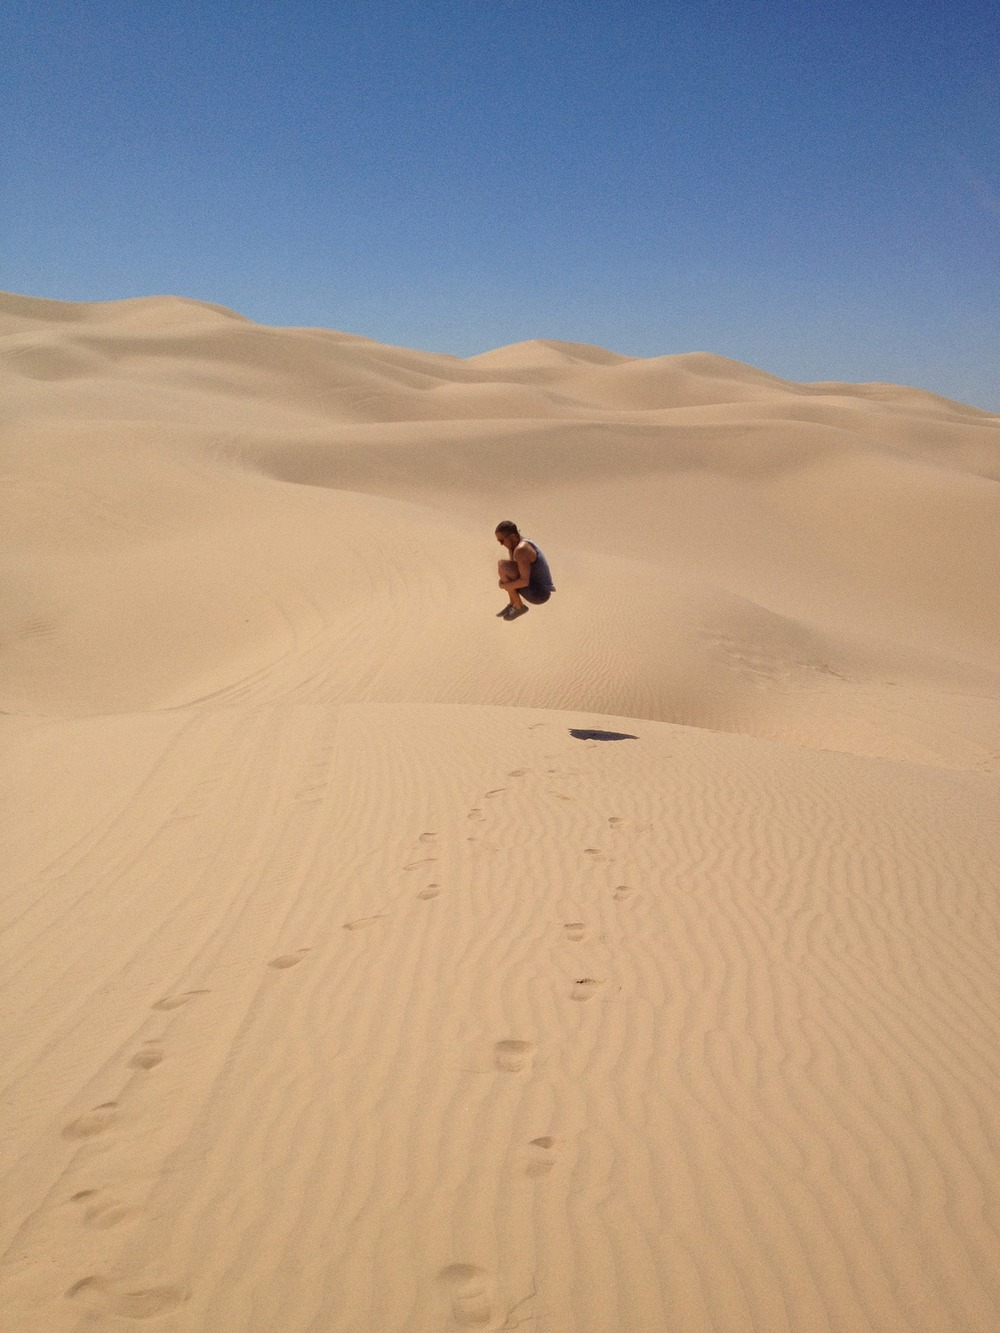 Yuma Desert (Tatooine in parts of original Star Wars trilogy)